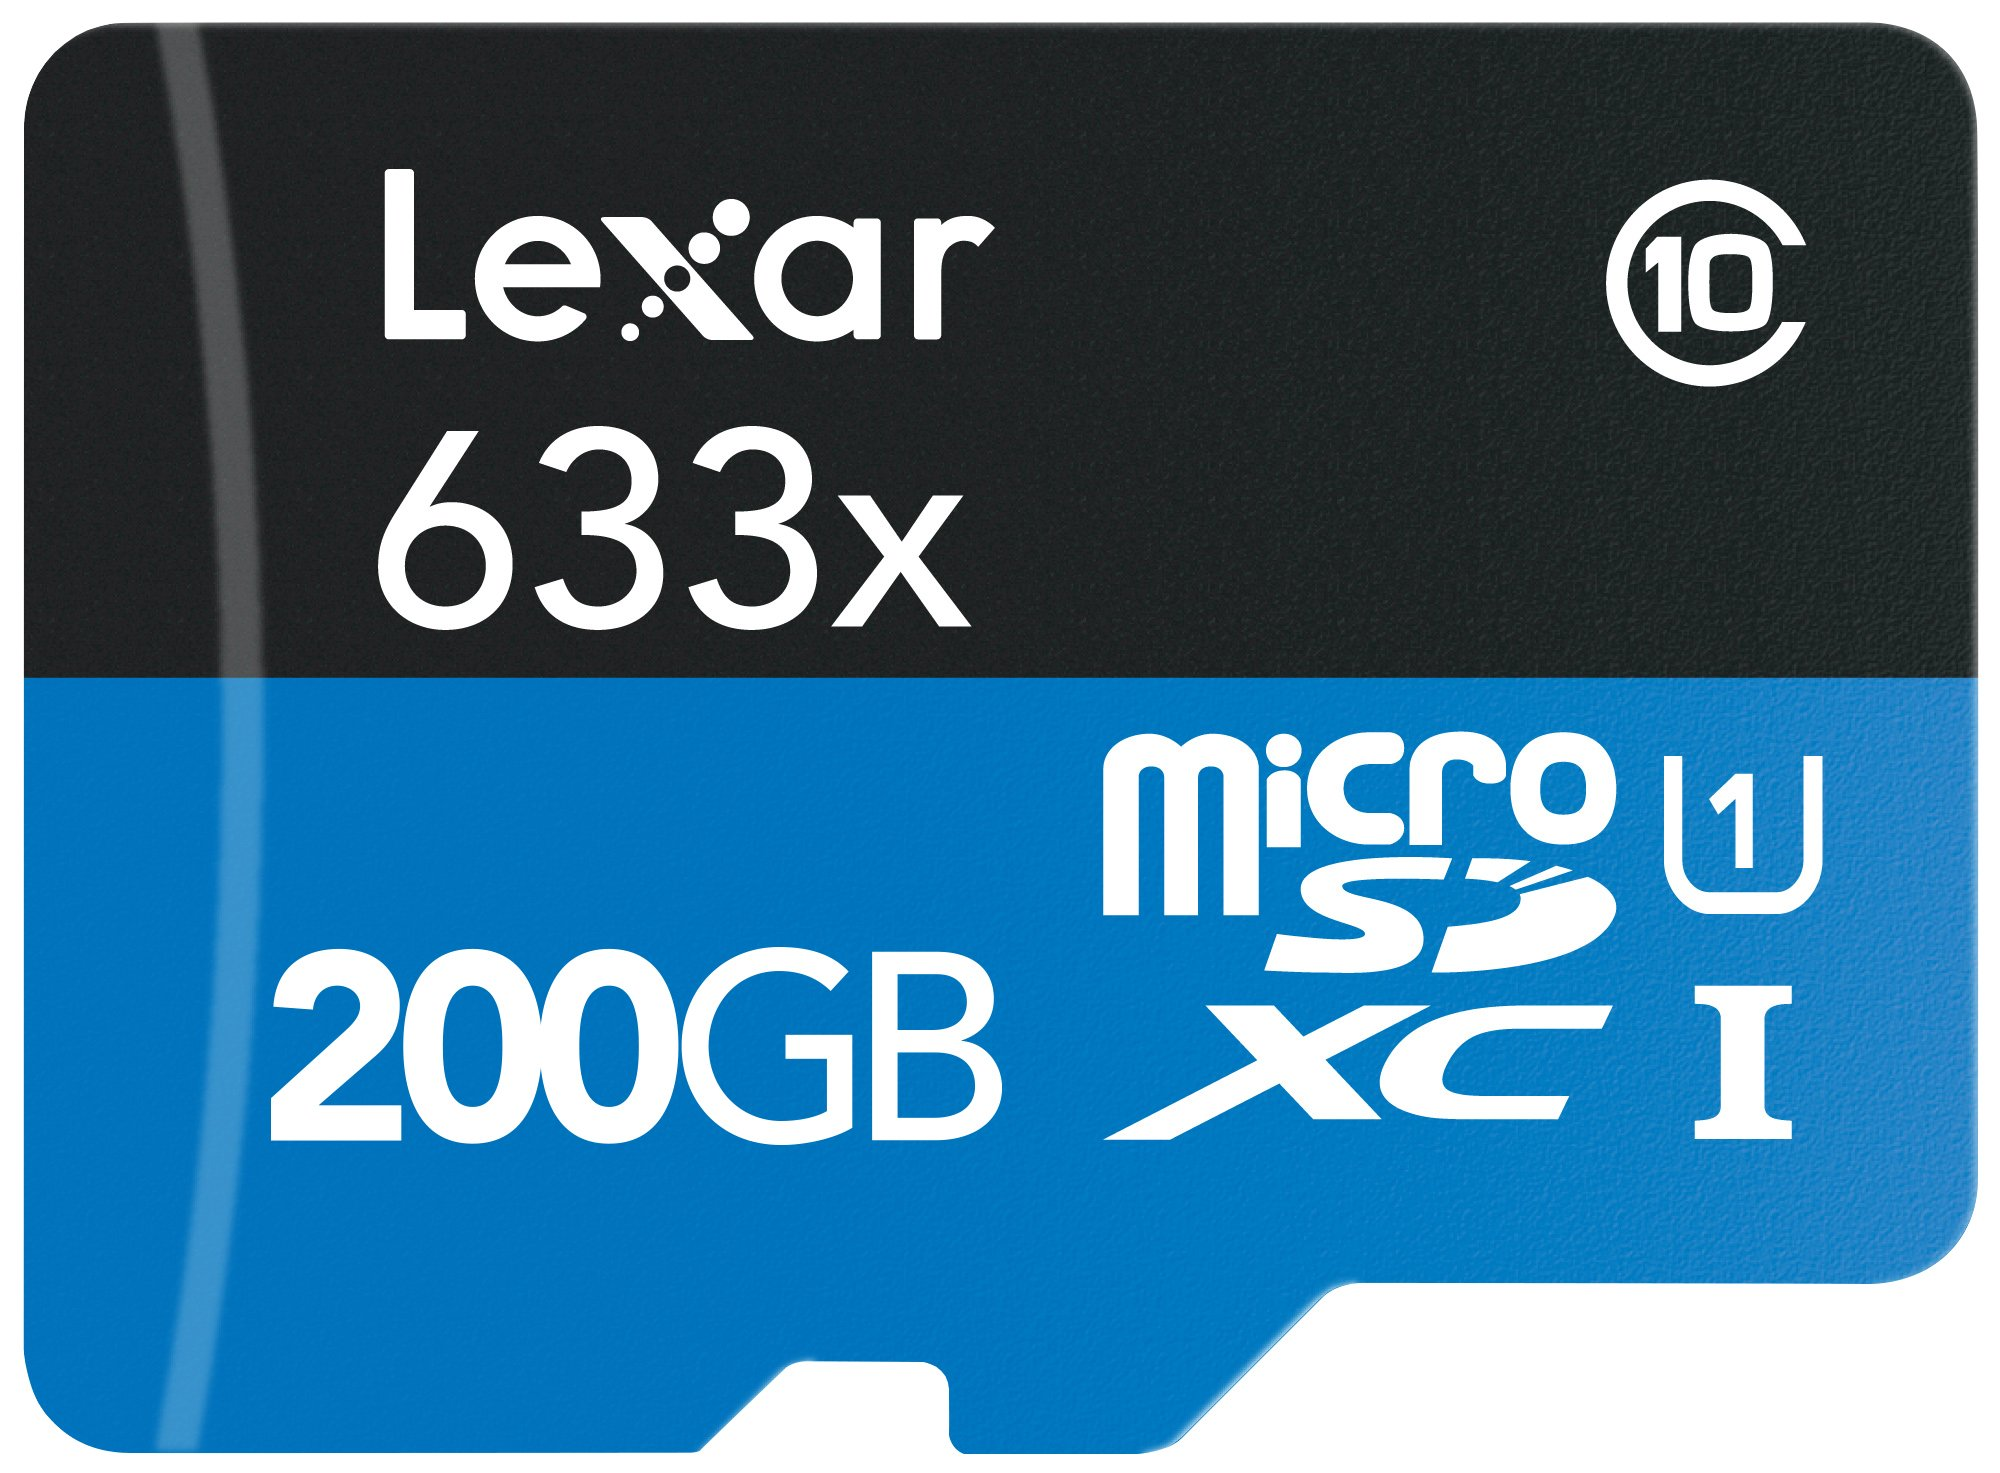 Lexar High-Performance microSDXC 633x 200GB UHS-I w/USB 3.0 Reader Flash Memory Card  - LSDMI200BBNL633R